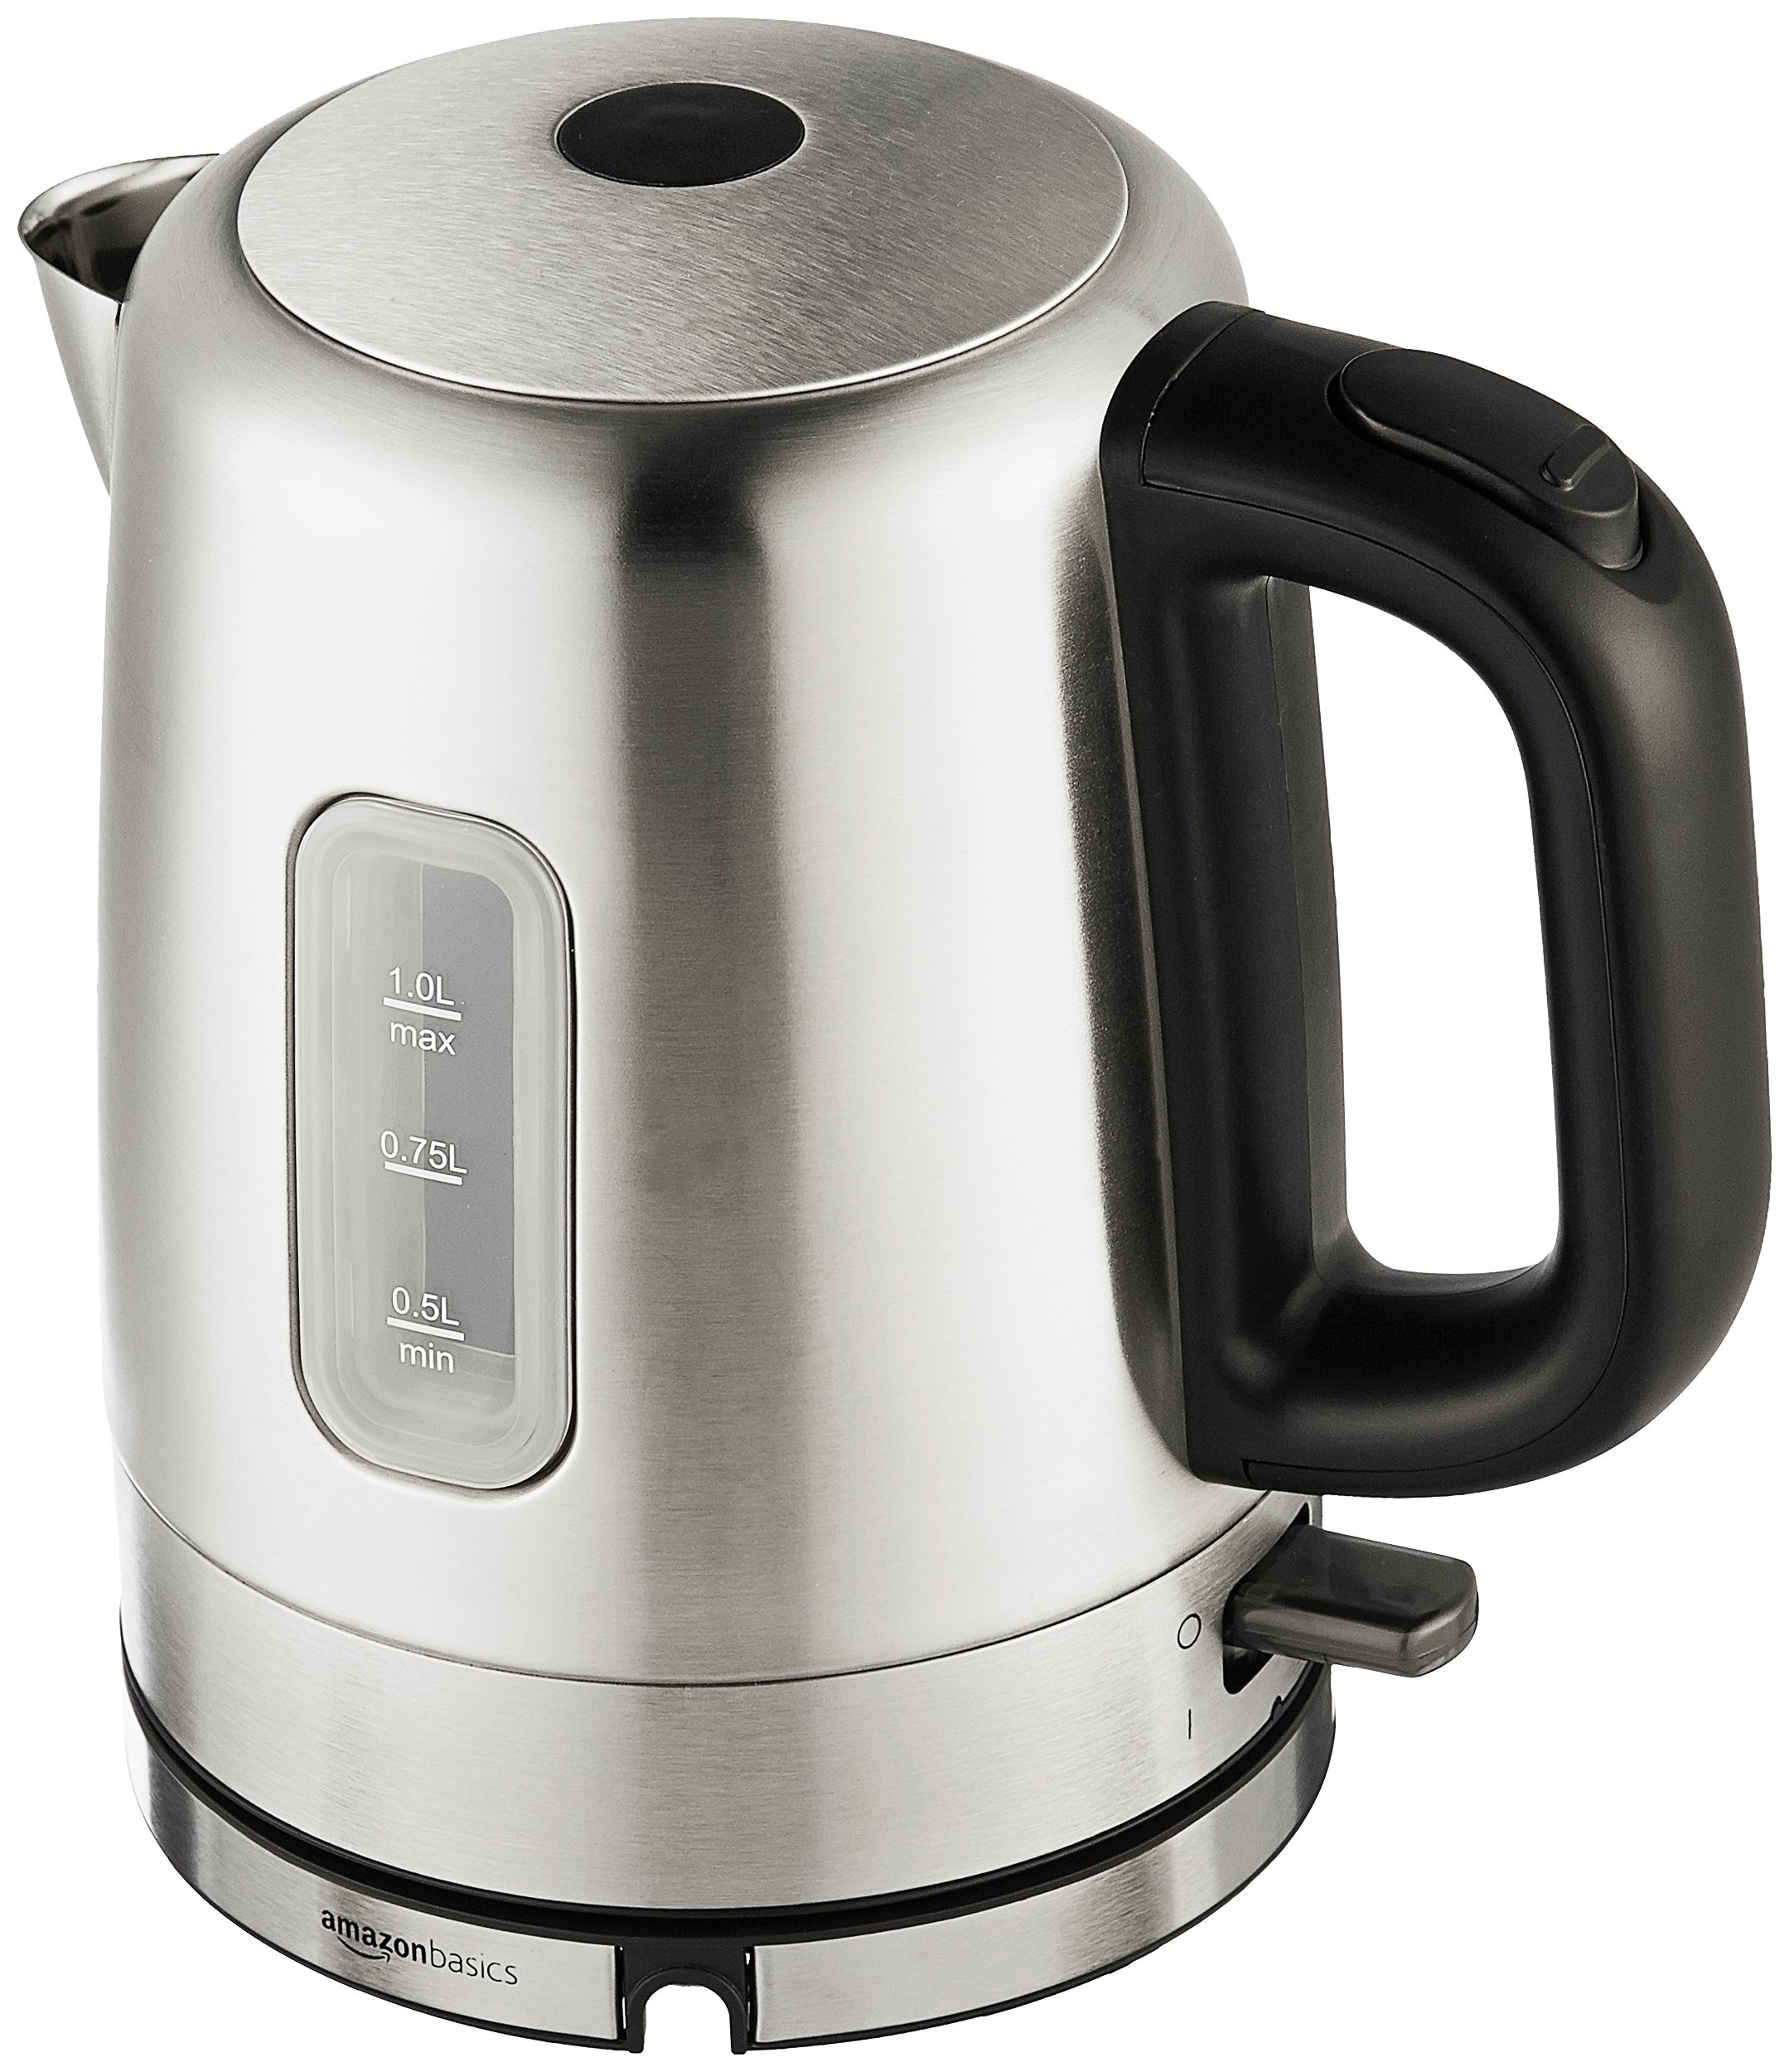 AmazonBasics Stainless Steel Electric Kettle - 1-Liter